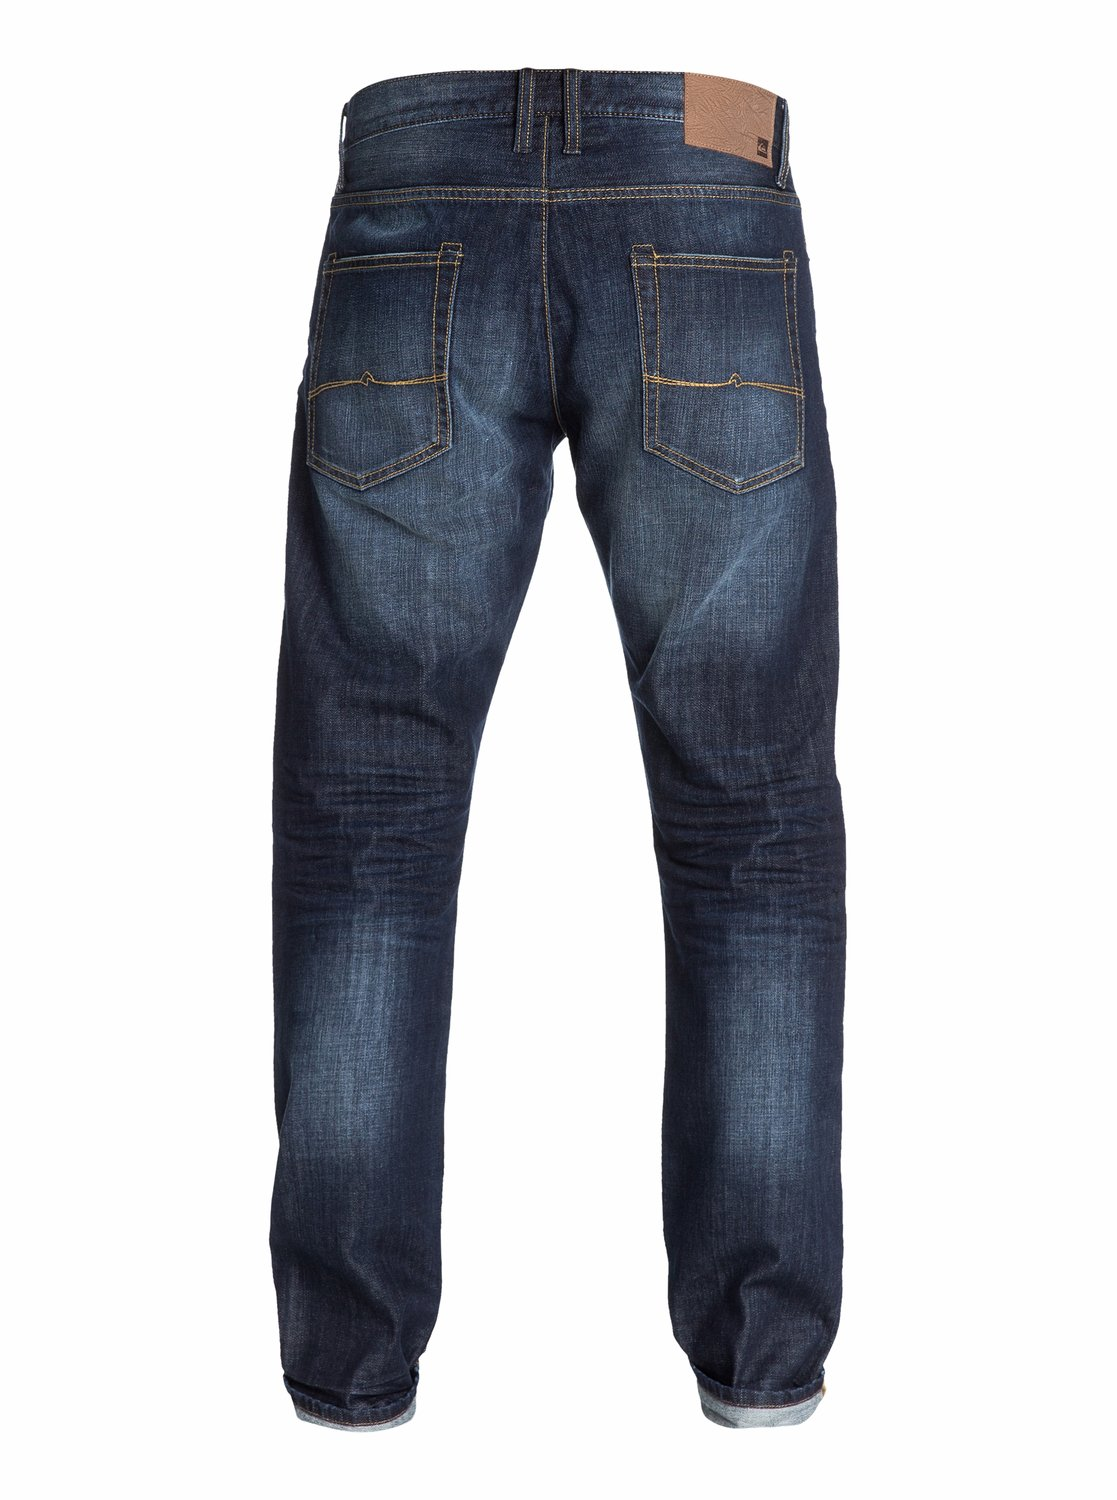 kracker aged straight tapered fit jeans 32 inseam eqydp03006 quiksilver. Black Bedroom Furniture Sets. Home Design Ideas